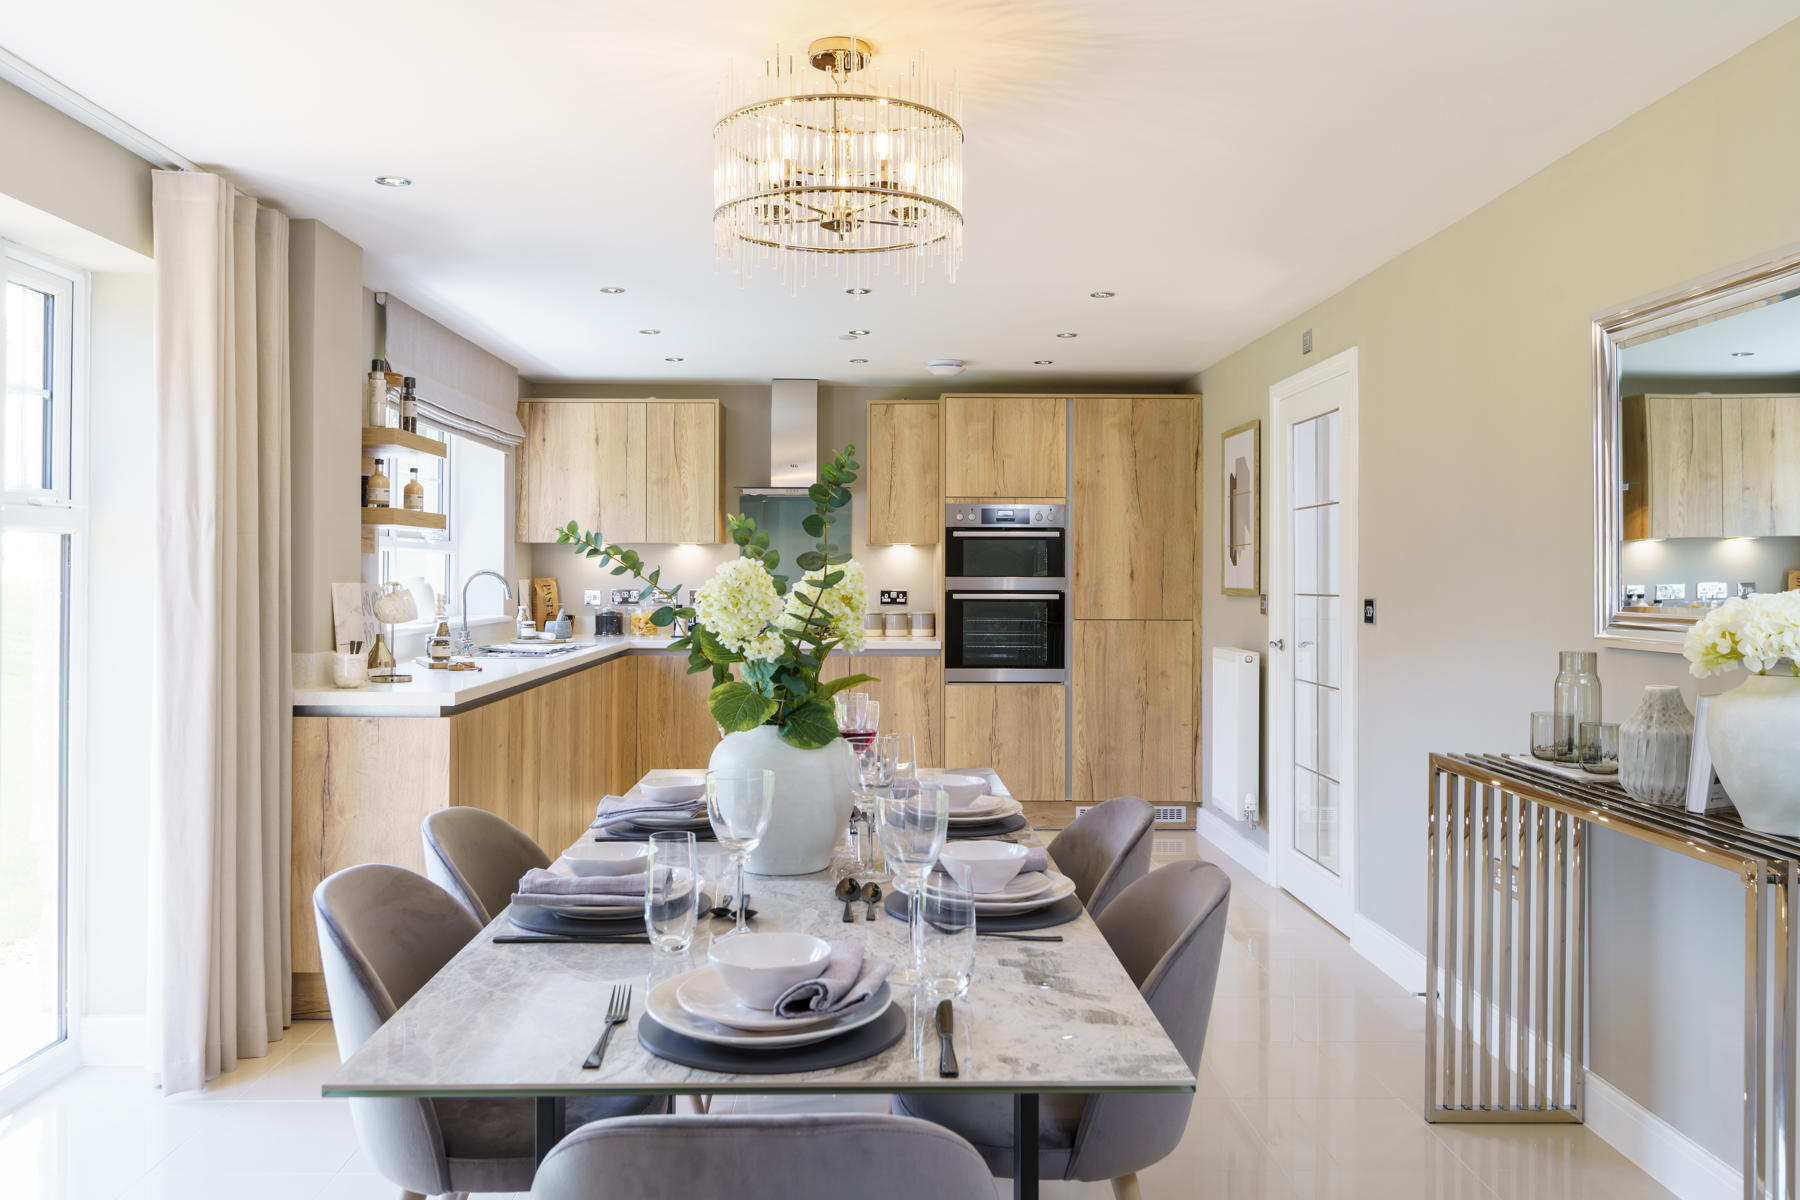 TW SW_Clare Garden Village_Heydon_Kitchen 2_1800x1200